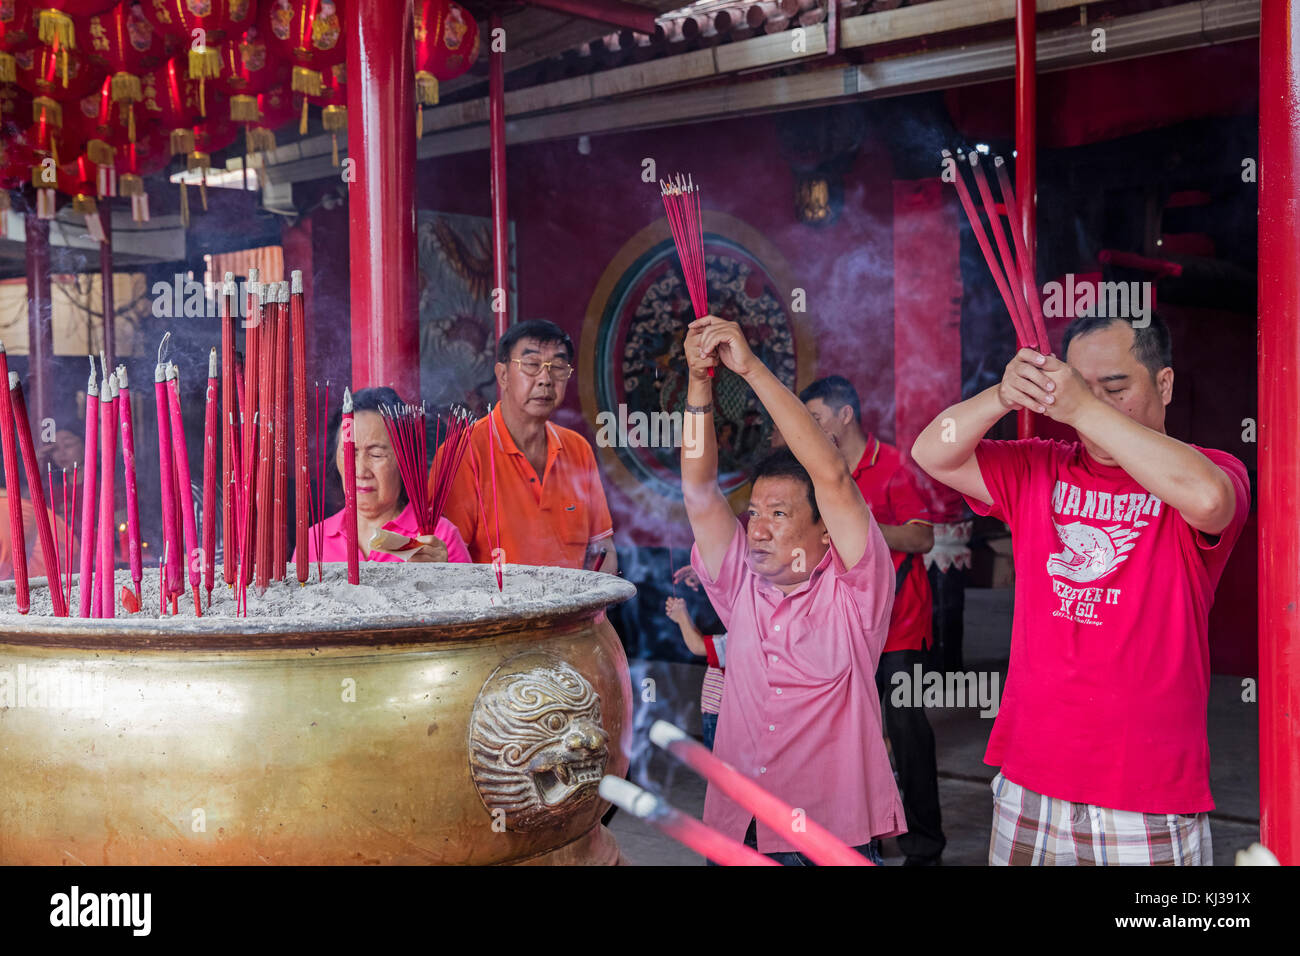 Chinese Indonesians worshipping by burning incense inside Chinese Buddhist temple at Jakarta, Indonesia - Stock Image